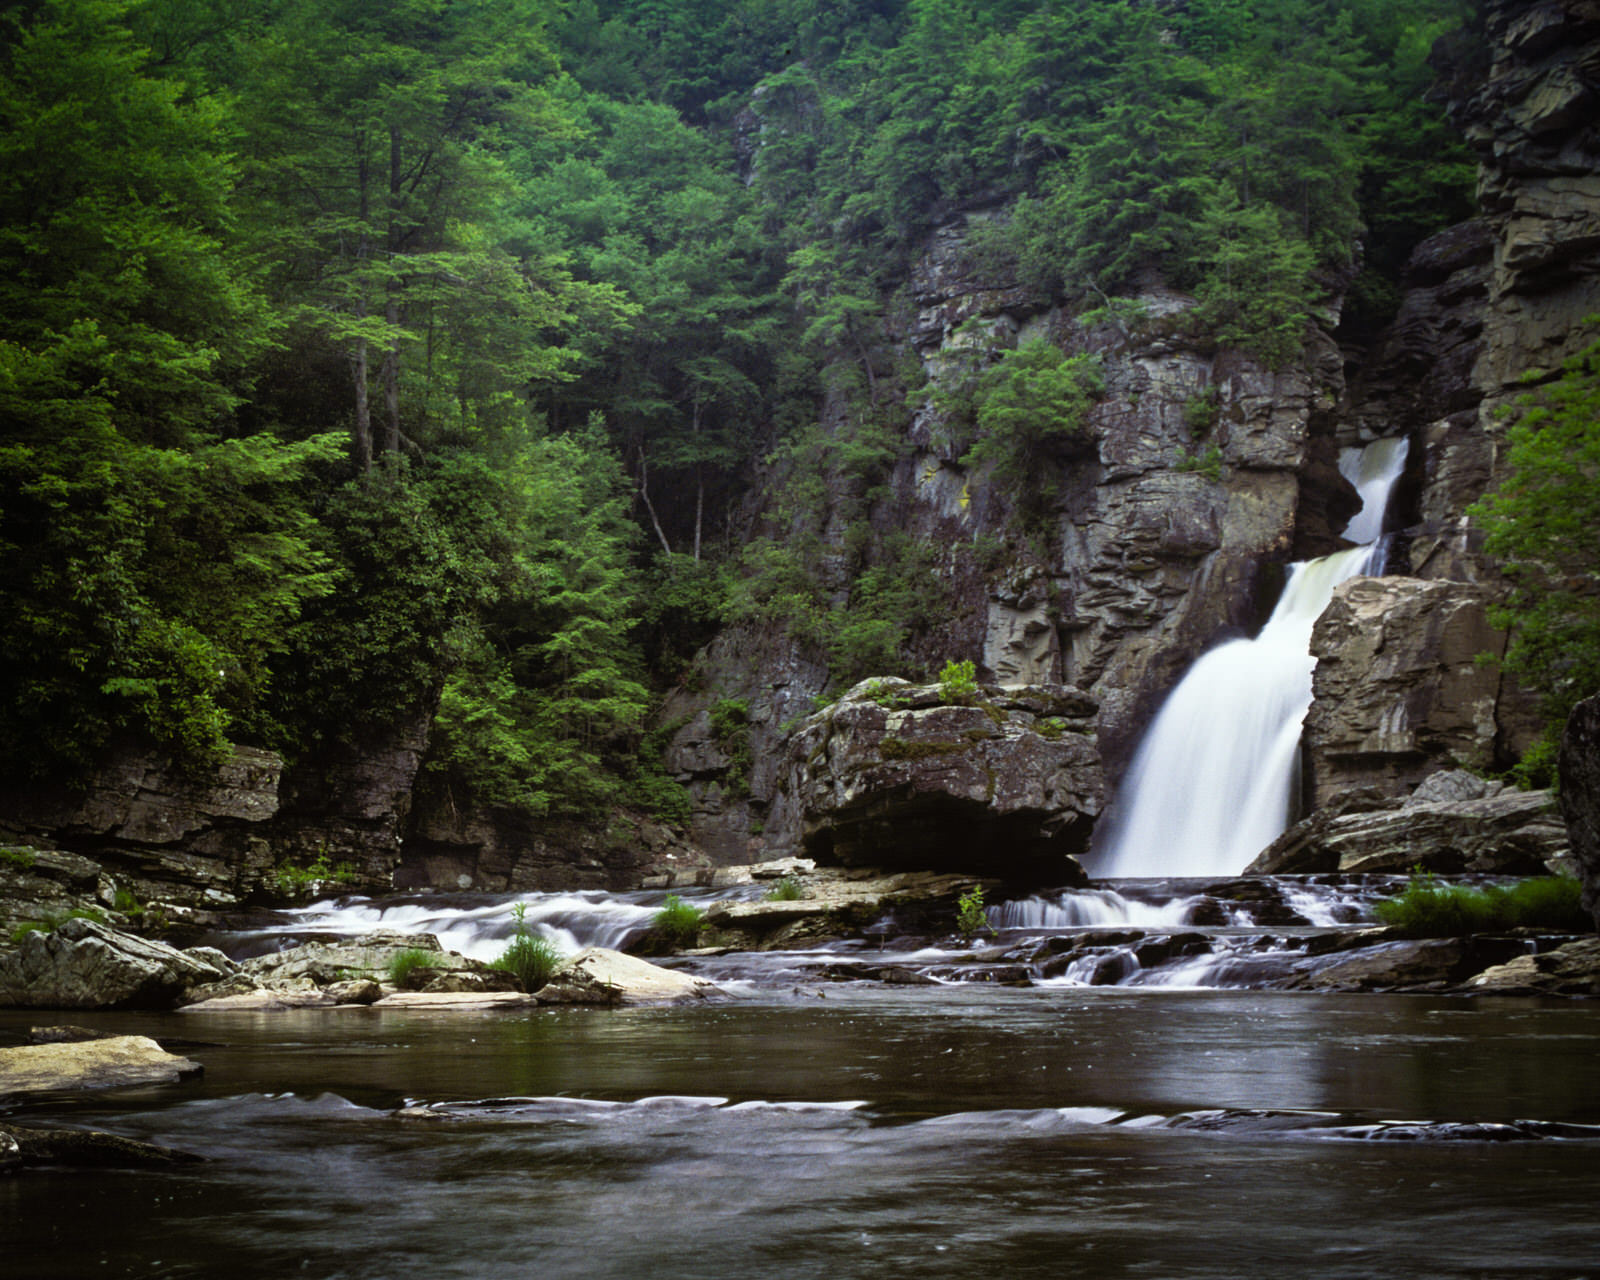 photo: Linville Falls from plunge pool. Photo by Bryan Hodges.